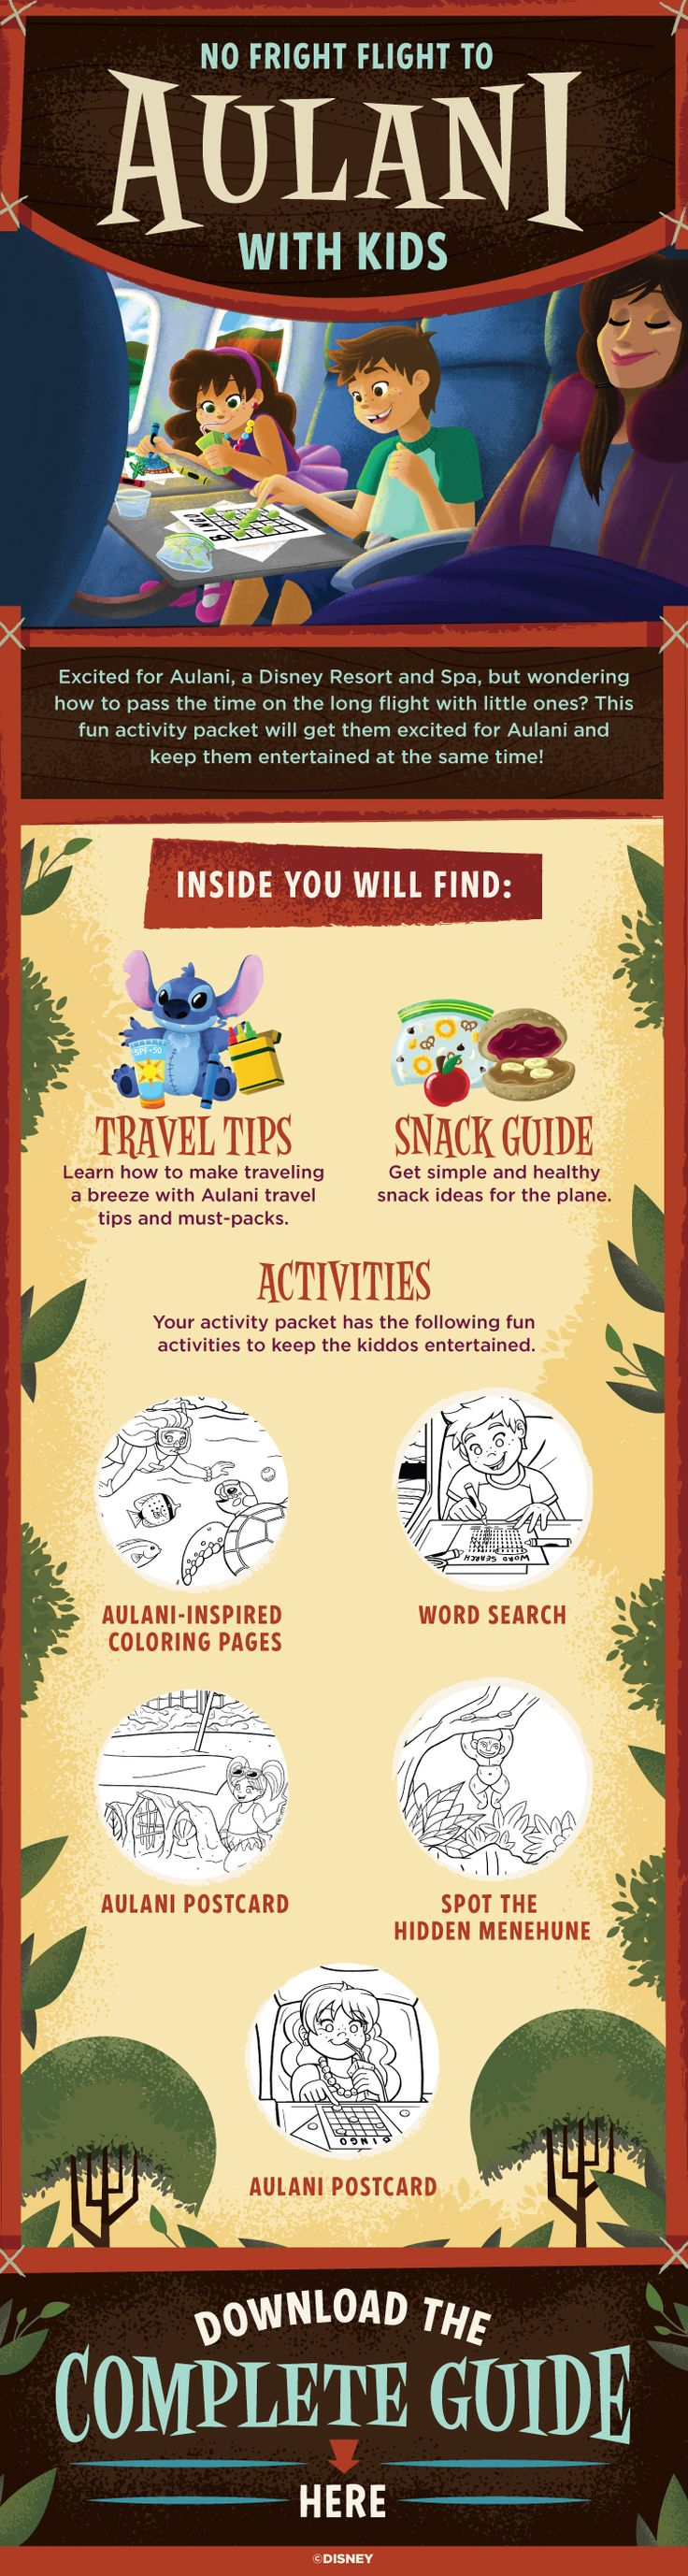 Excited for your upcoming Hawaii vacation to Aulani but wondering how to pass the time with the little ones? This fun activity packet will get them excited for the trip and keep them entertained! Click to find travel tips, snack guides, coloring pages, word searches and more!